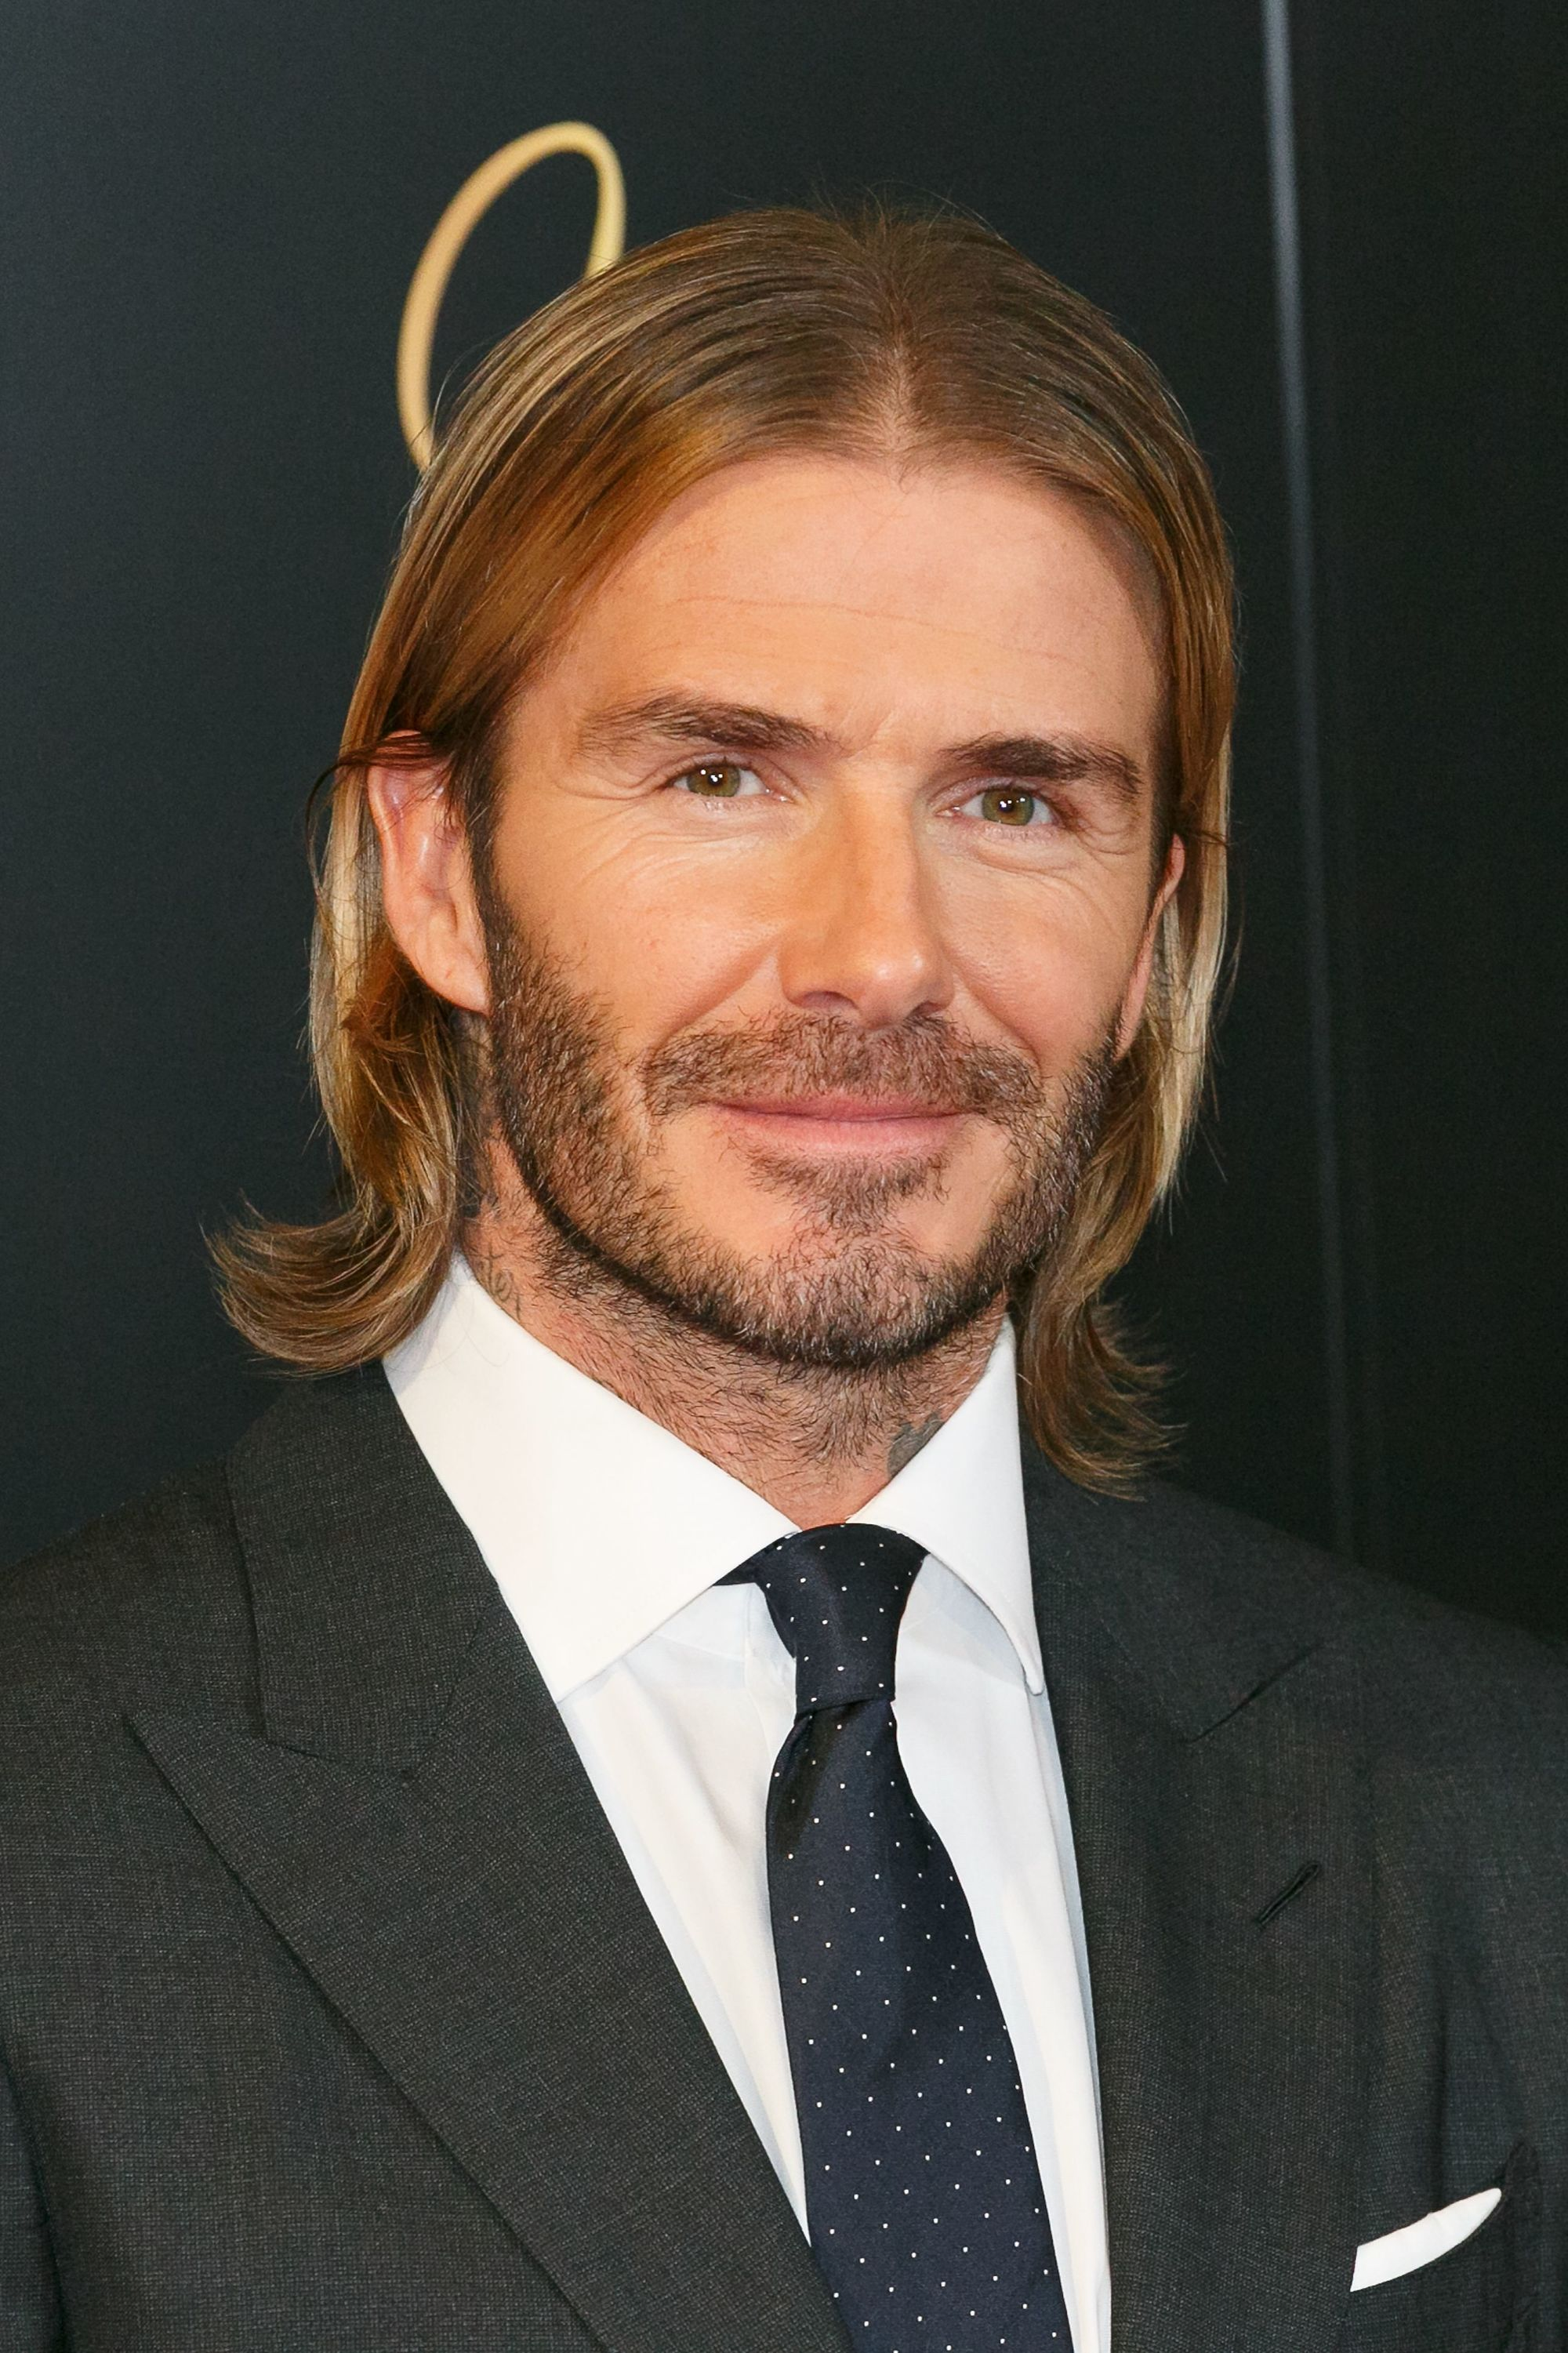 david beckham on the red carpet in a tux with slick long hair